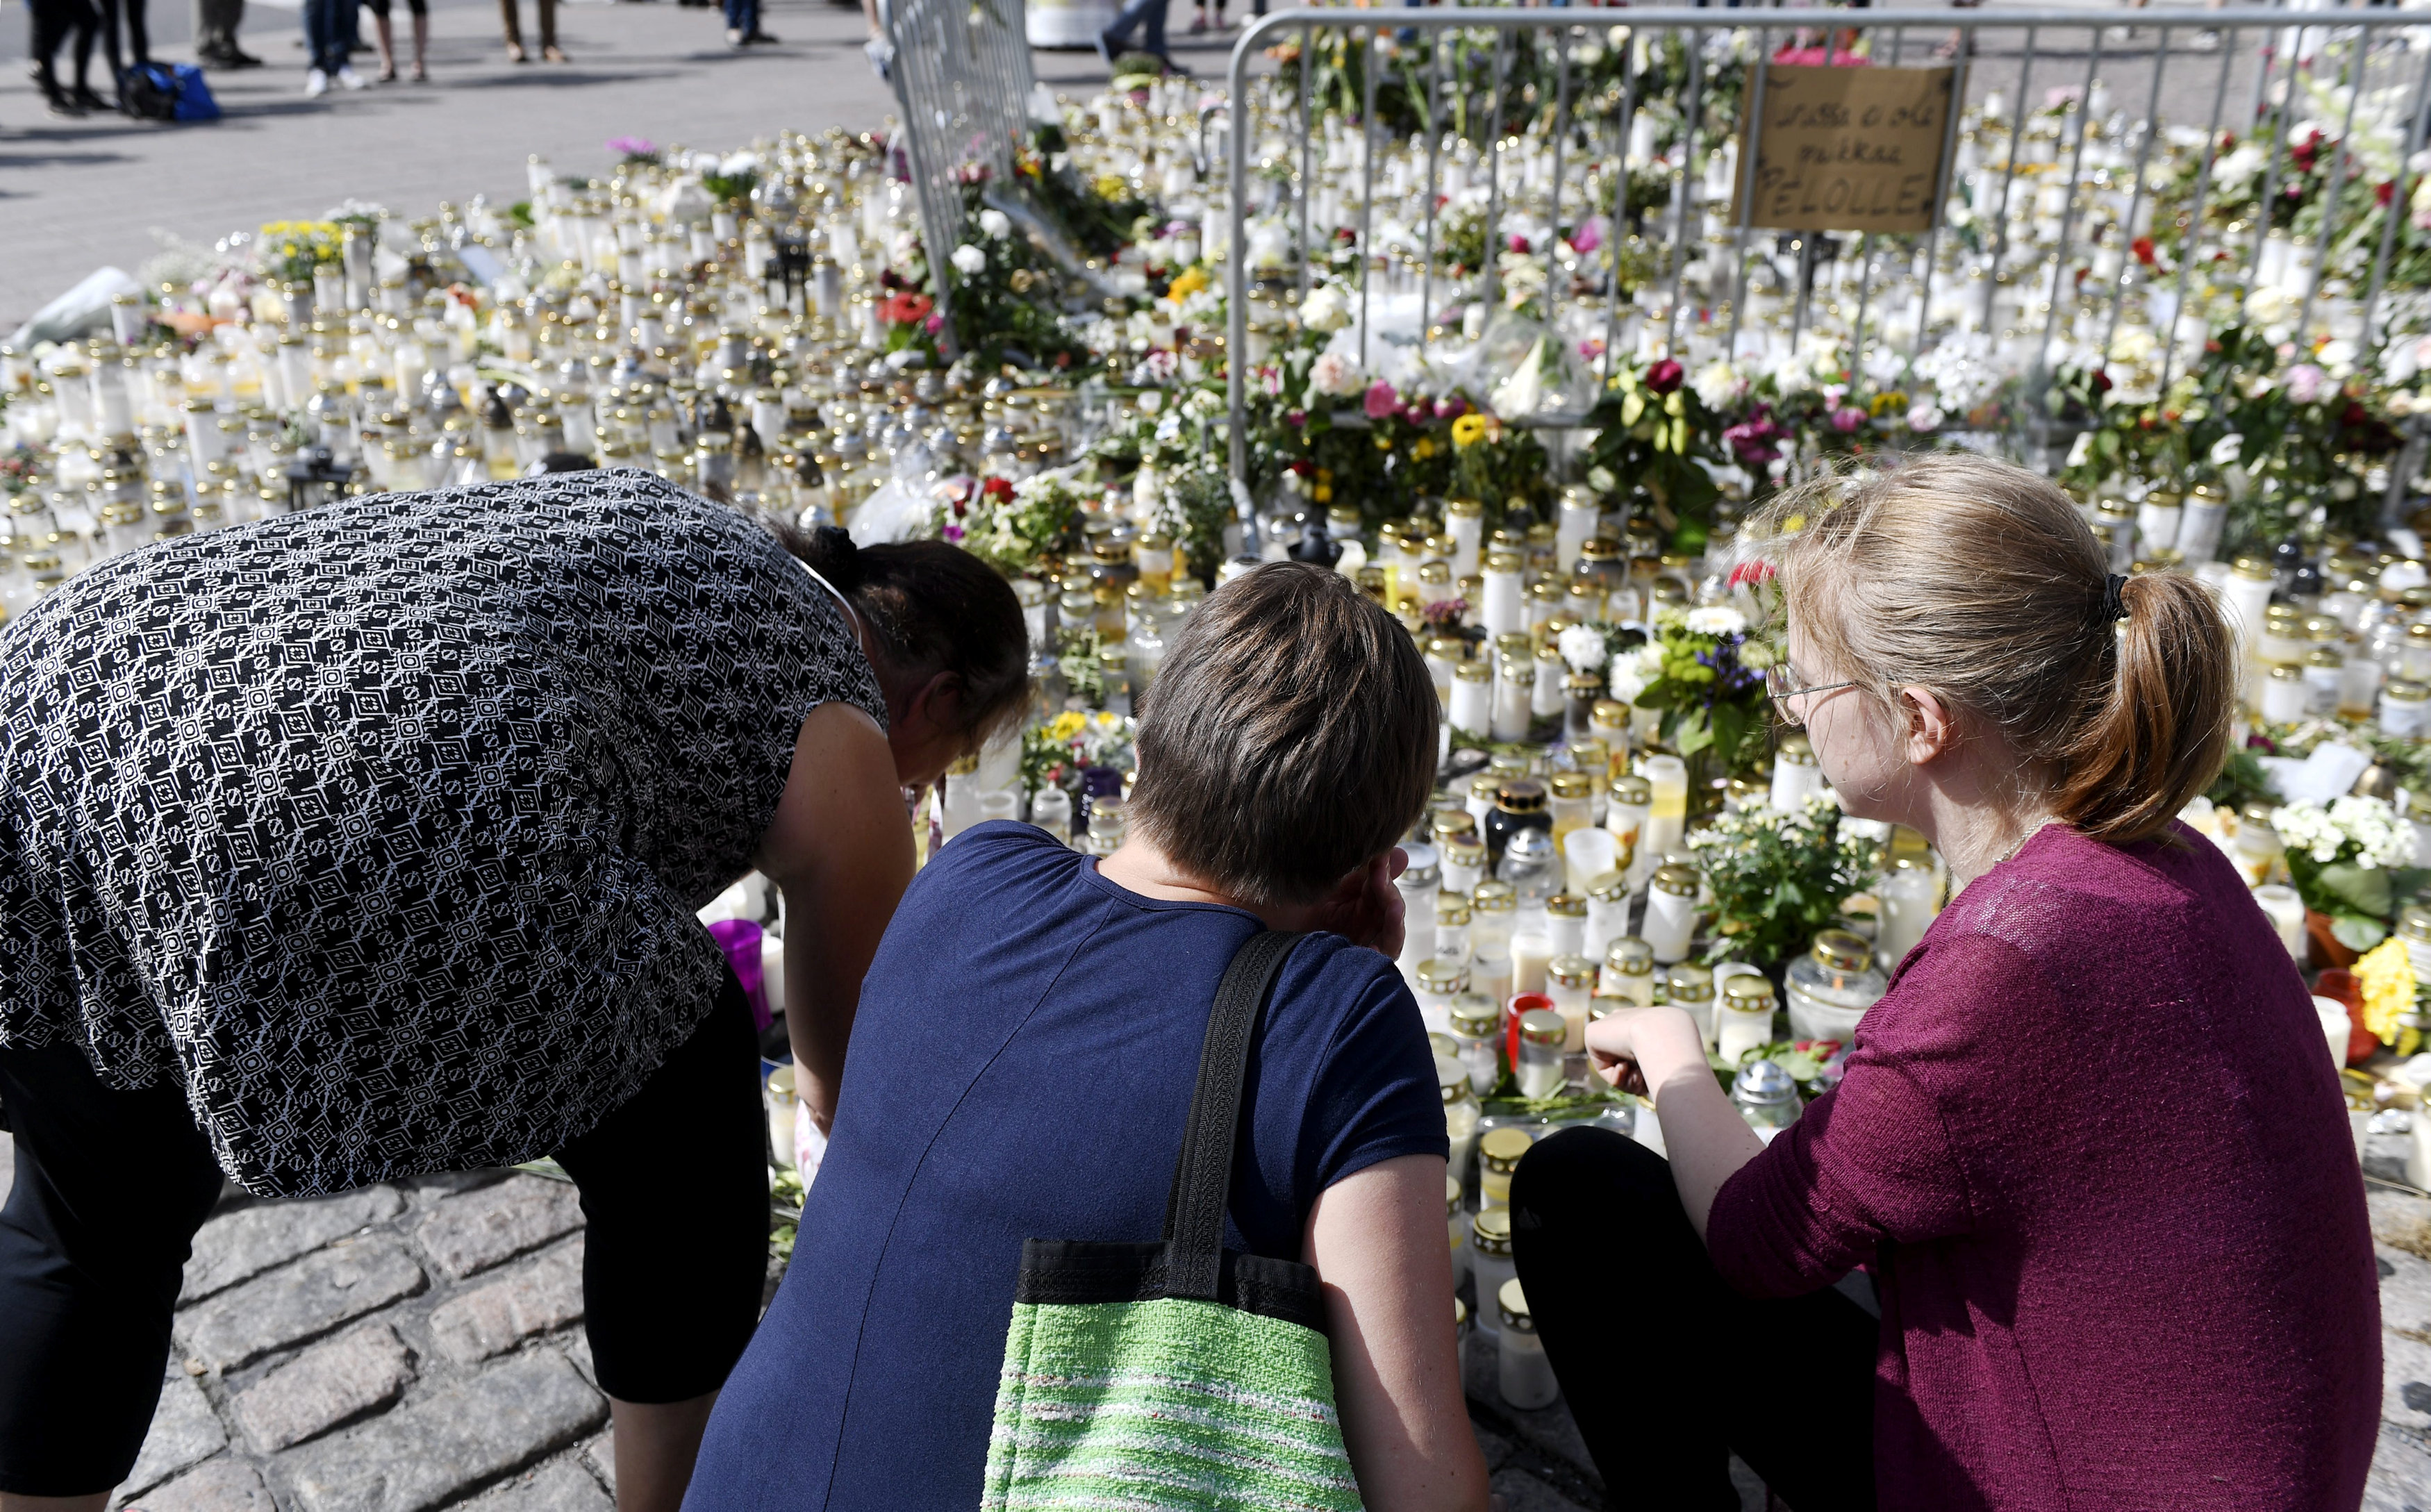 Mourners bring memorial cards, candles and flowers to the Turku Market Square, in Turku, Finland  on August 20, 2017. (Lehtikuva/Vesa Moilanen)